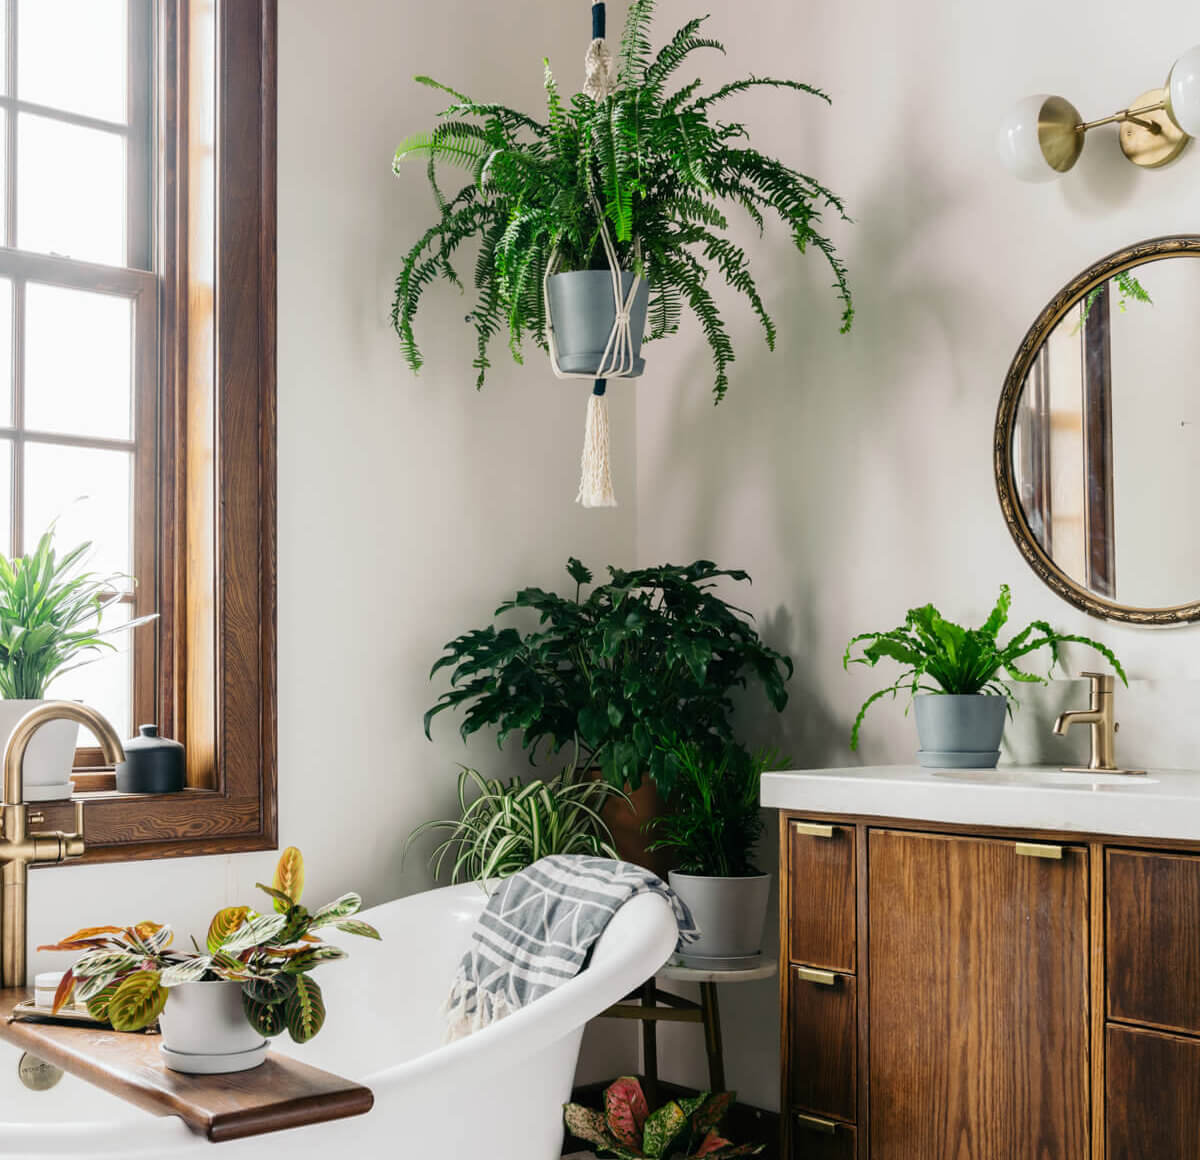 Best Plants for the Bathroom: Bloomscape Your Space